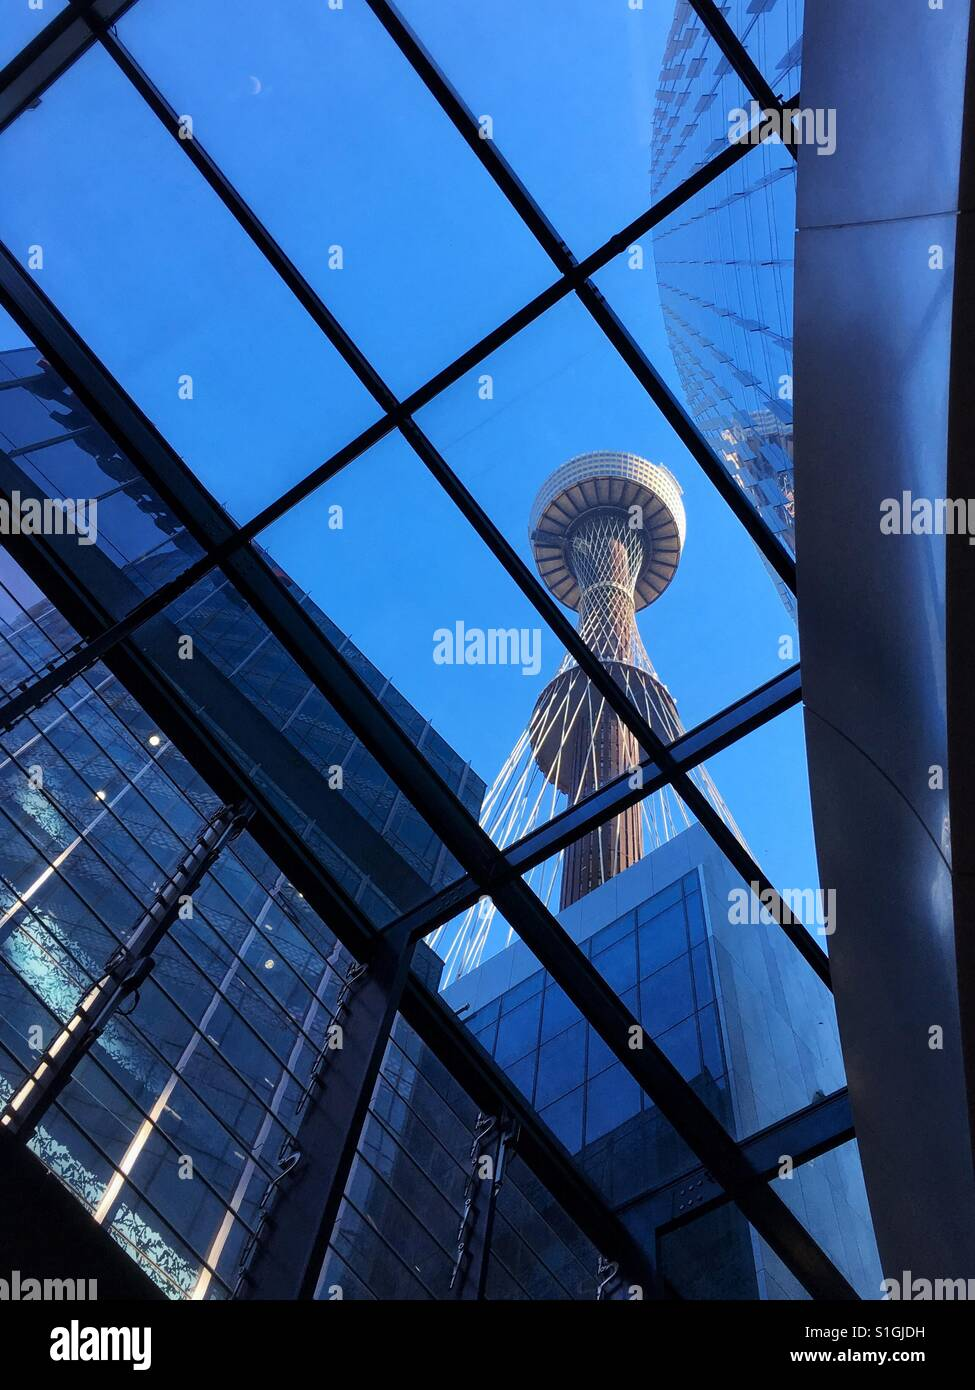 Sydney Tower Eye from Inside Westfield Sydney Shopping Centre - Stock Image